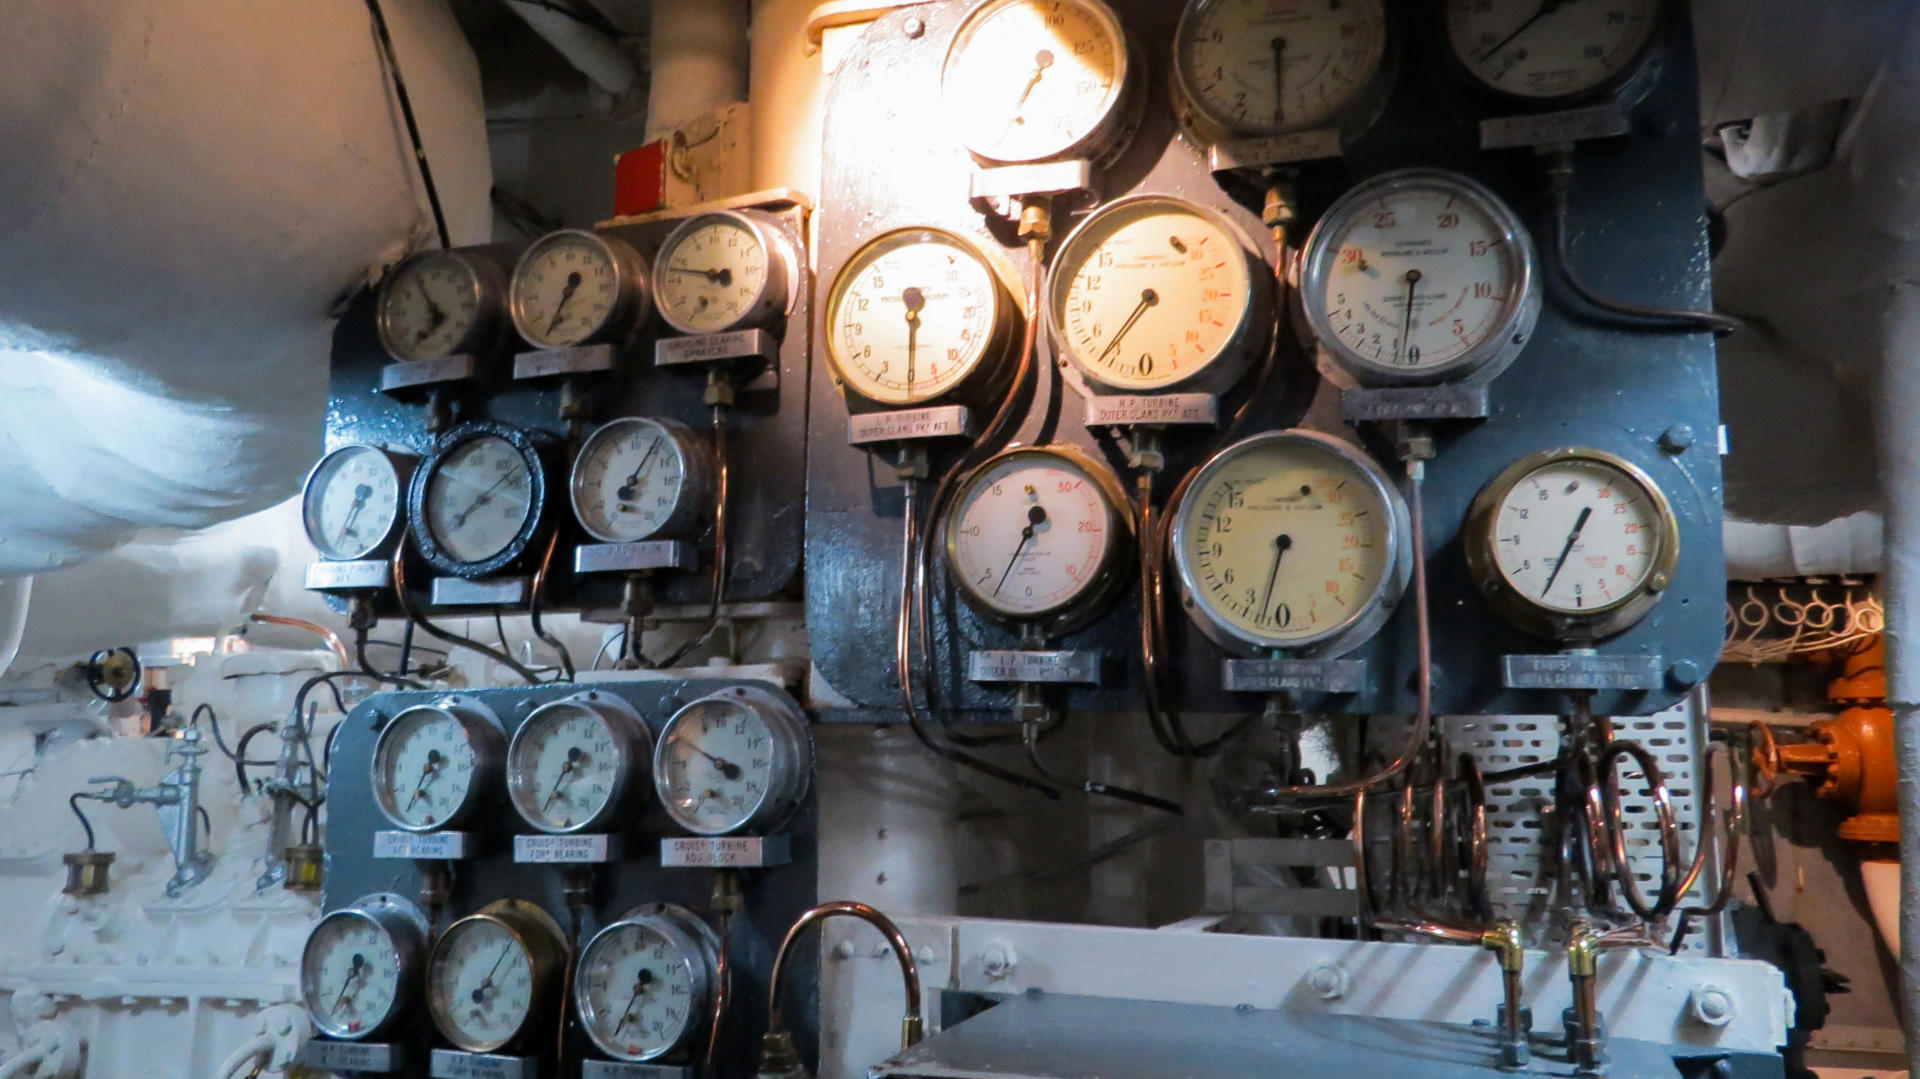 HMS Belfast pressure dials inside the boiler room